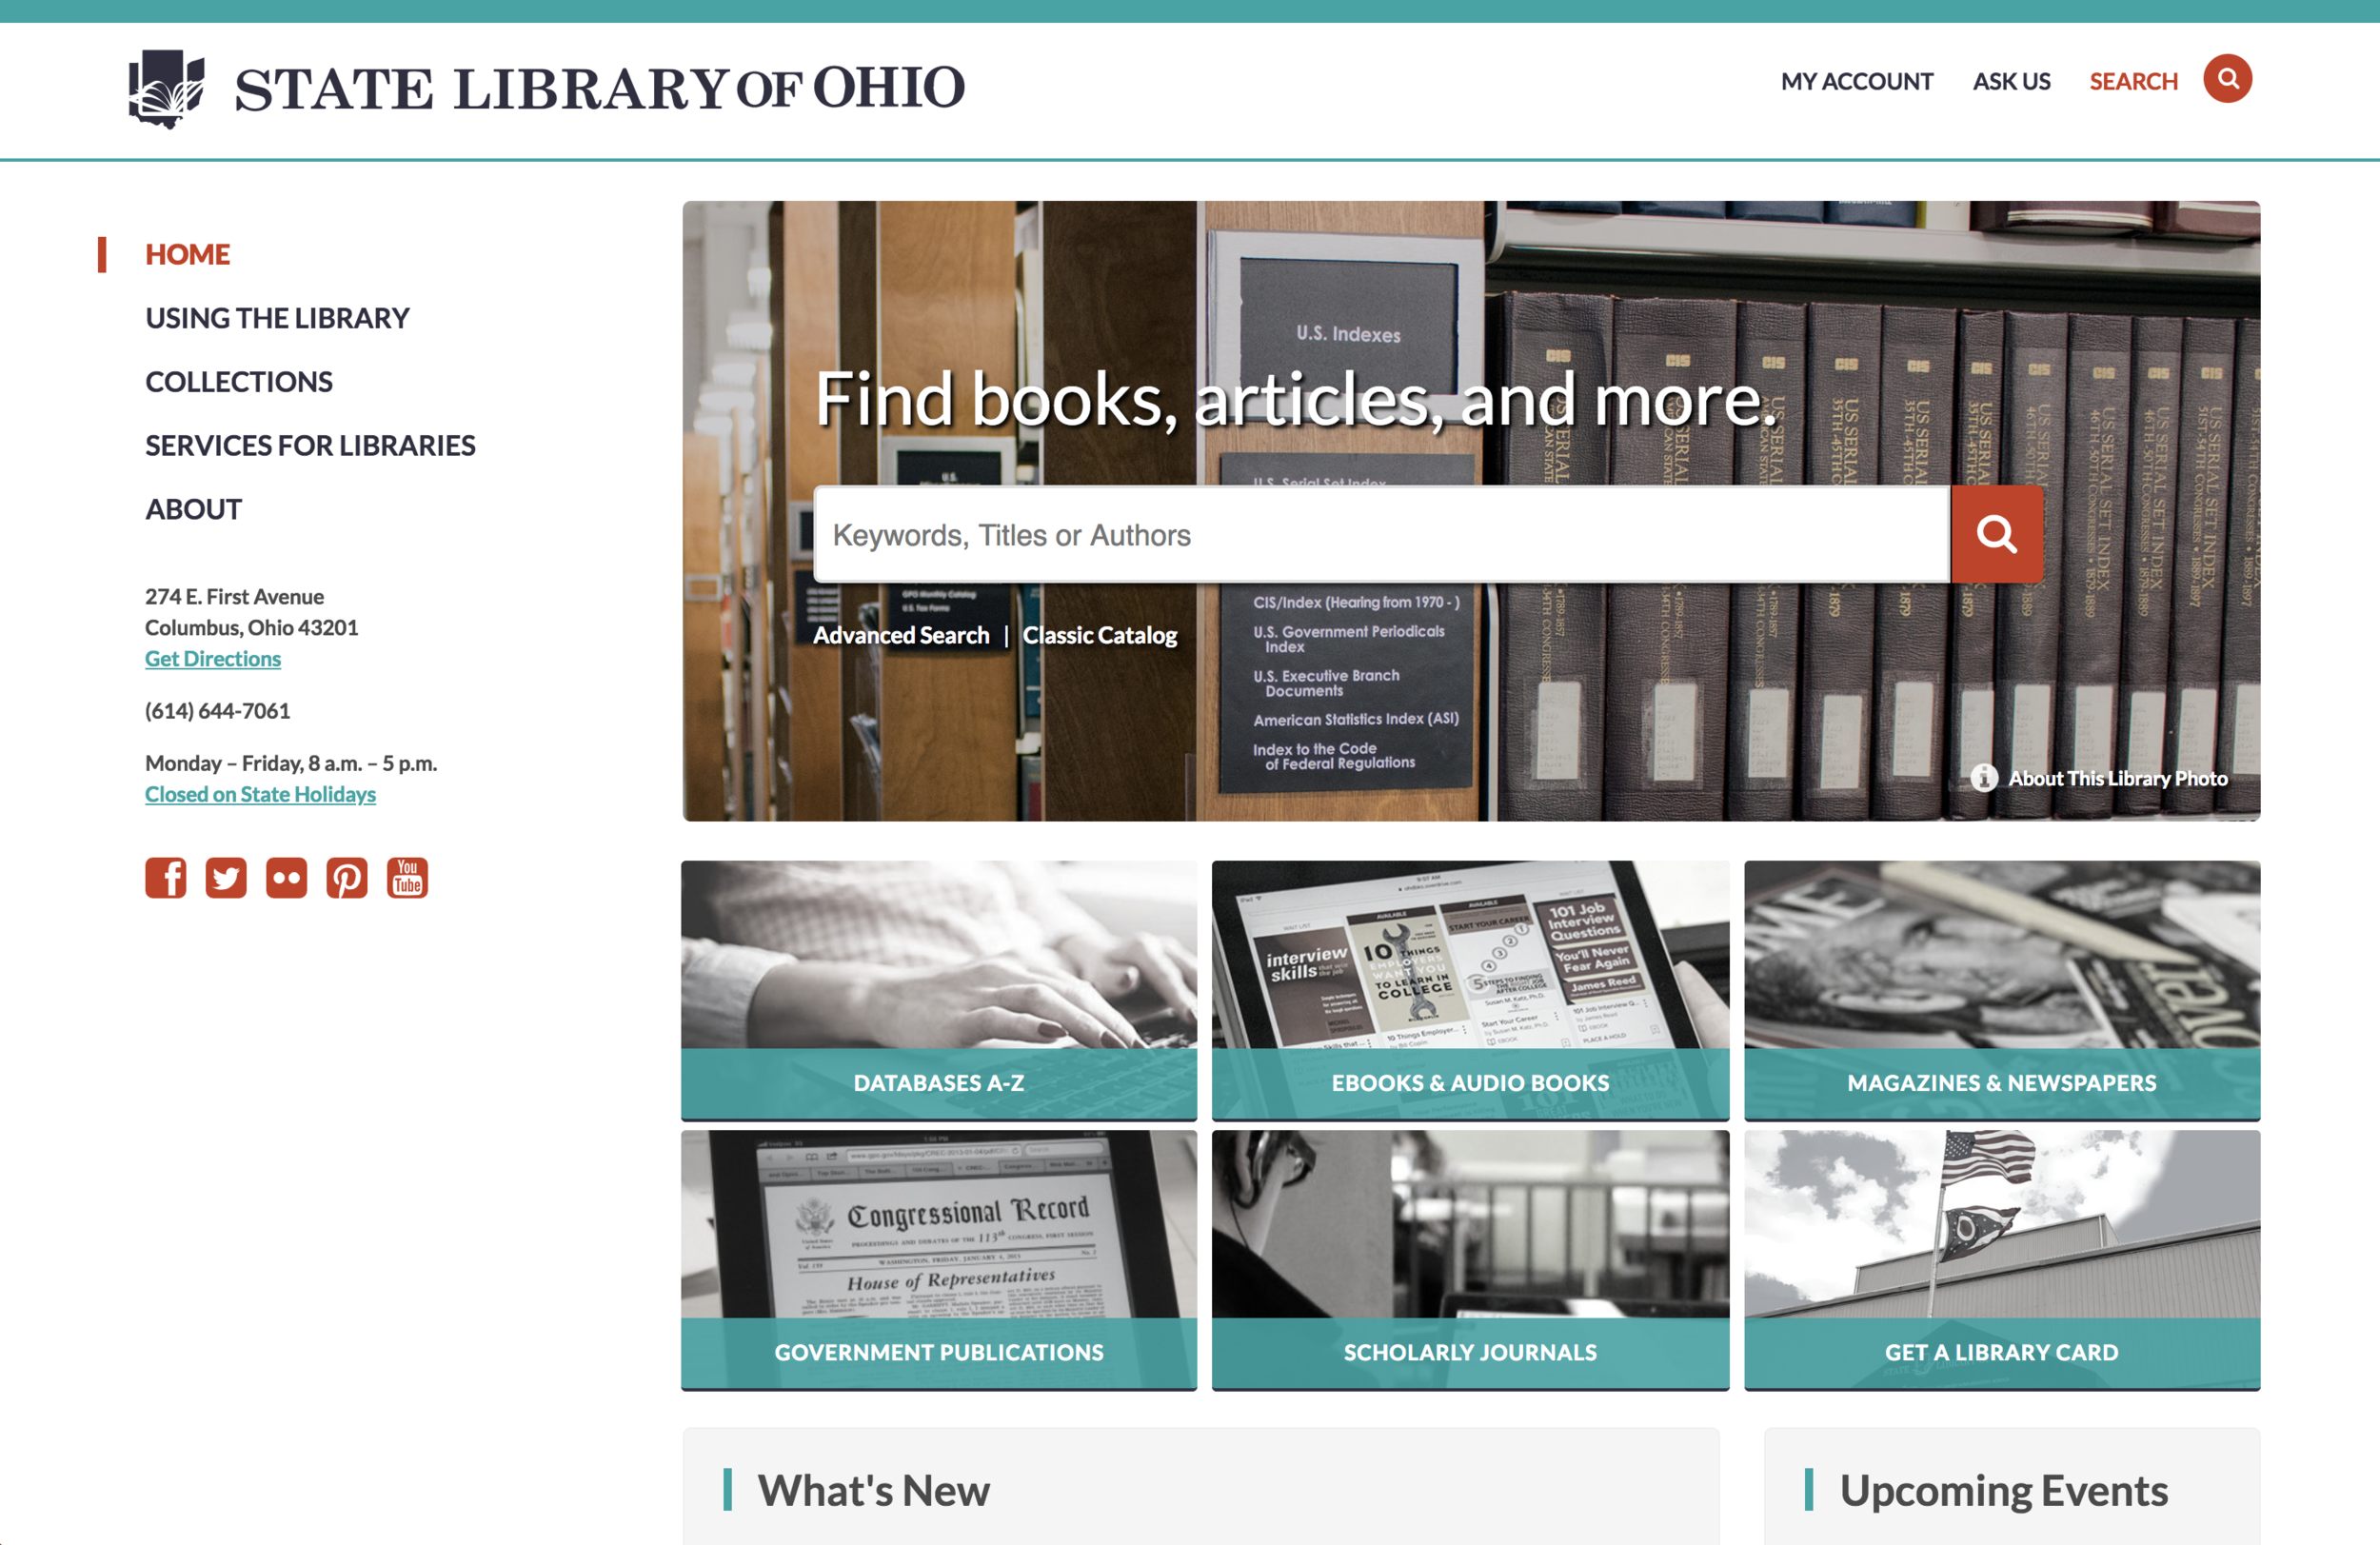 The new design highlighted search prominently on the home page. It made other key tools more readily available (databases, scholarly journals, and other collections).